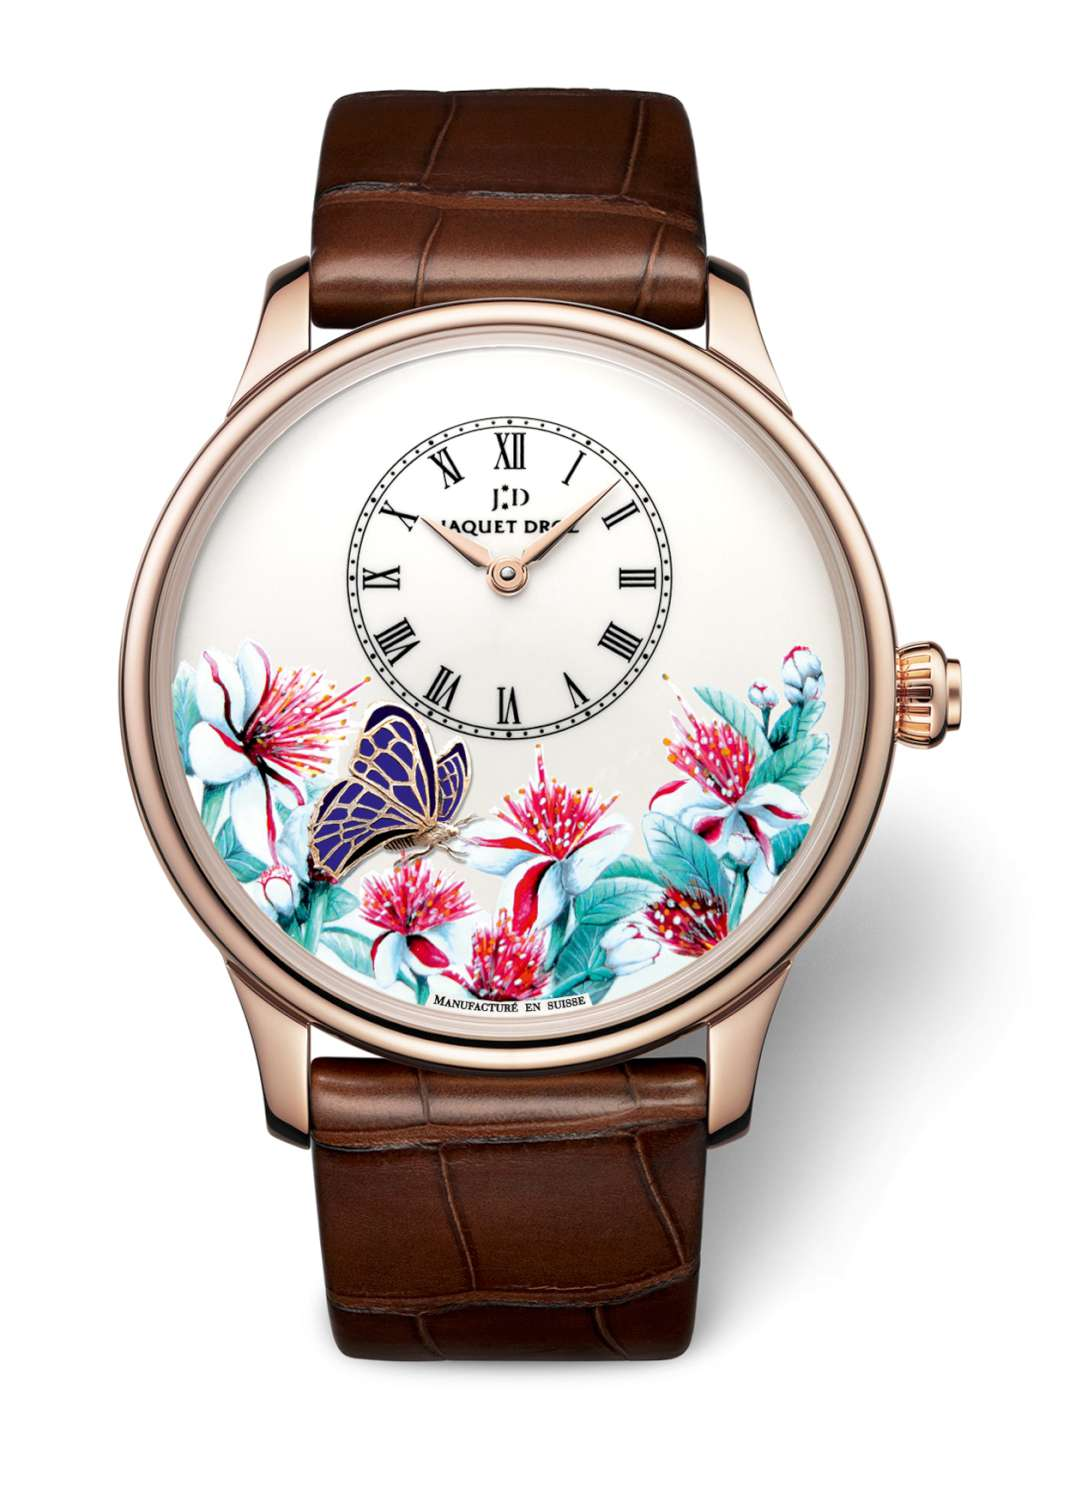 J005033283_PETITE_HEURE_MINUTE_THE_BUTTERFLY_JOURNEY-1500